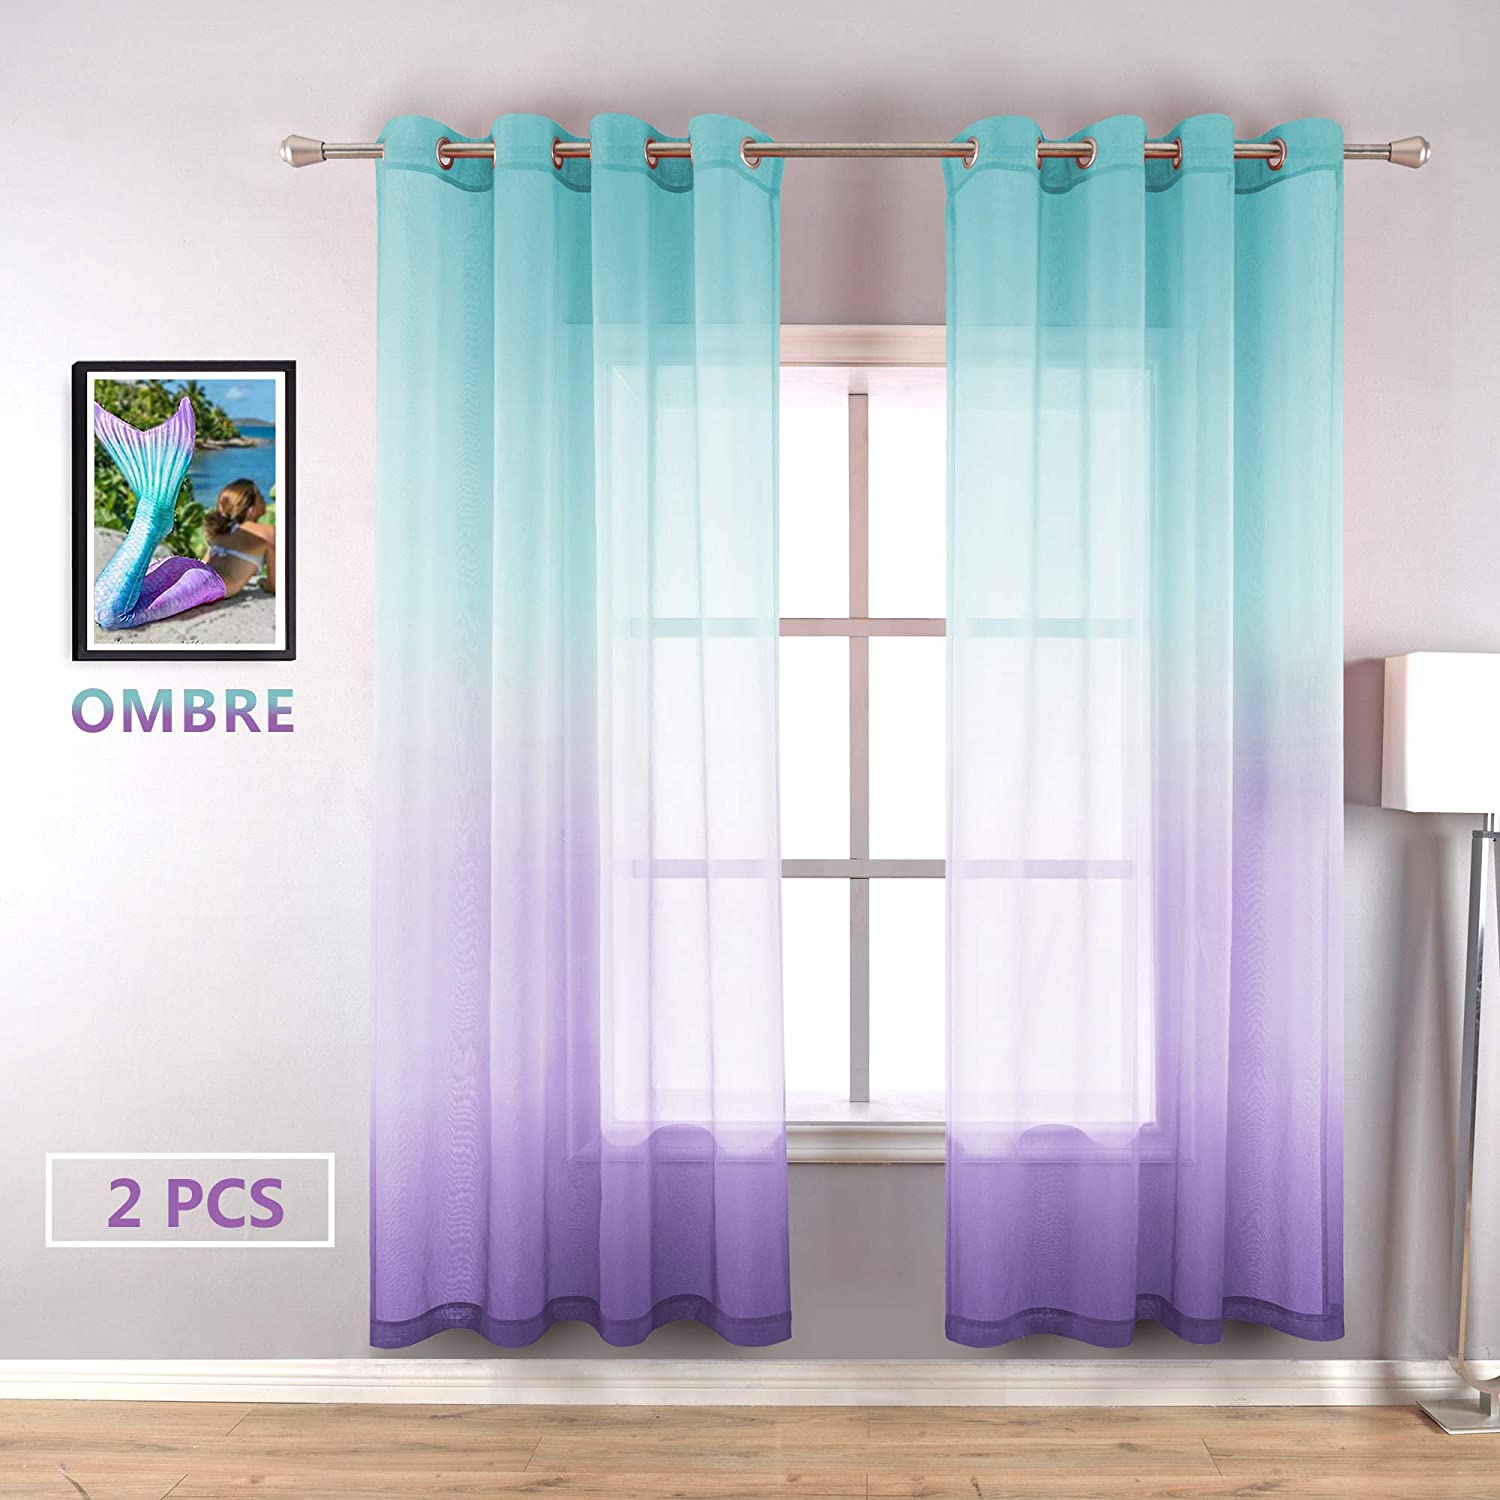 Sheer Curtains for Bedroom 2 Panels Grommet Ombre Sky Sea Decor Nautical Decoration Beachy Themed Window Curtains for Patio Dining Living Girls Kids Nursery Babies Room 72 Inch Length Lilac Turquoise